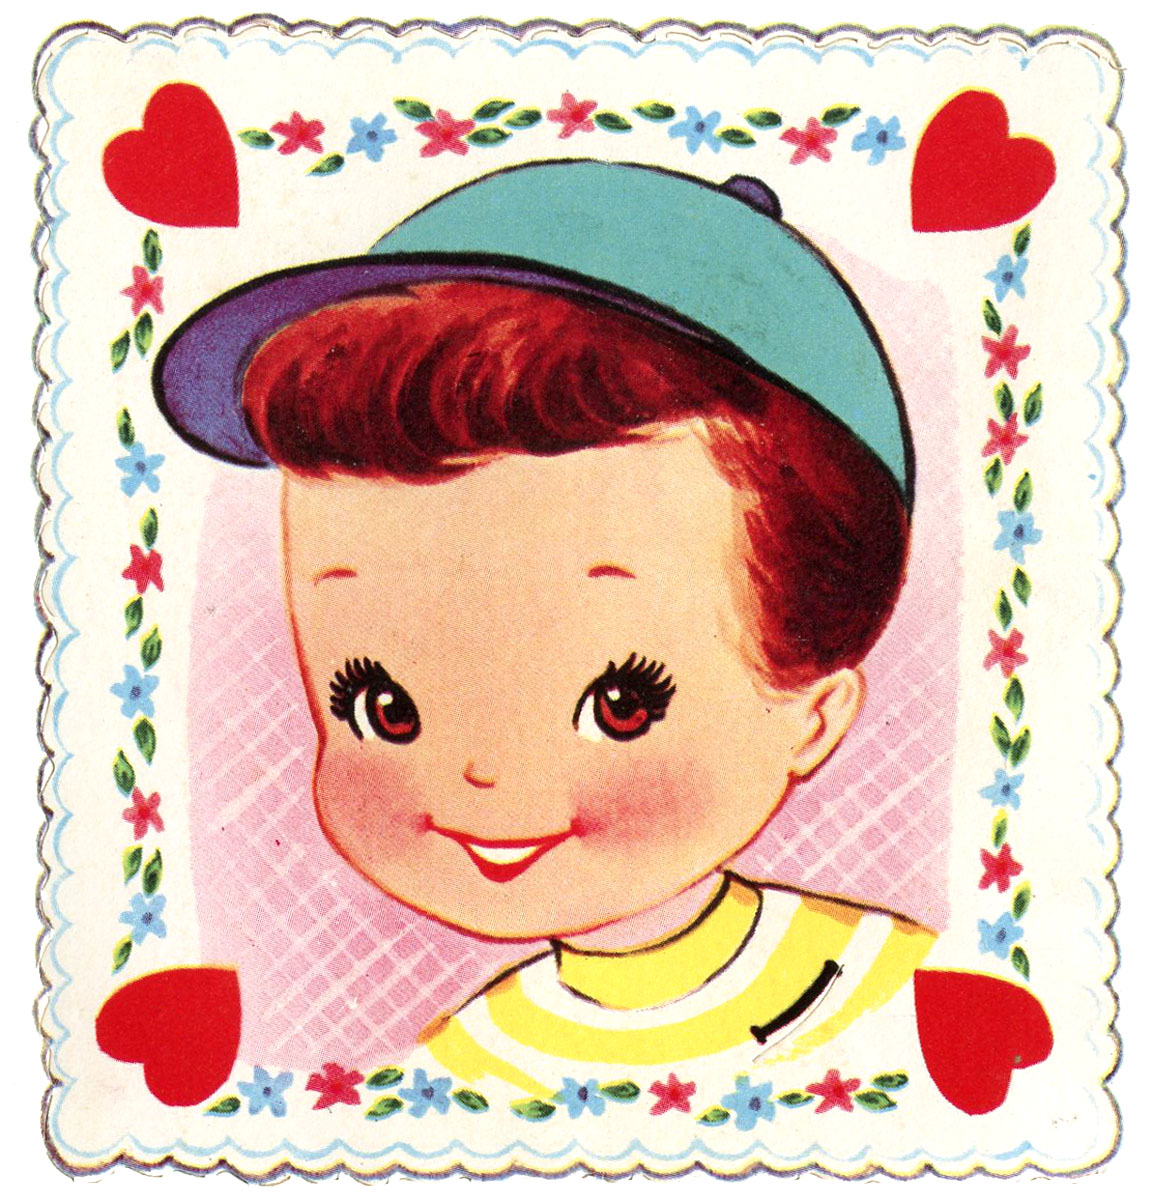 Cute Retro Valentin Boy Square